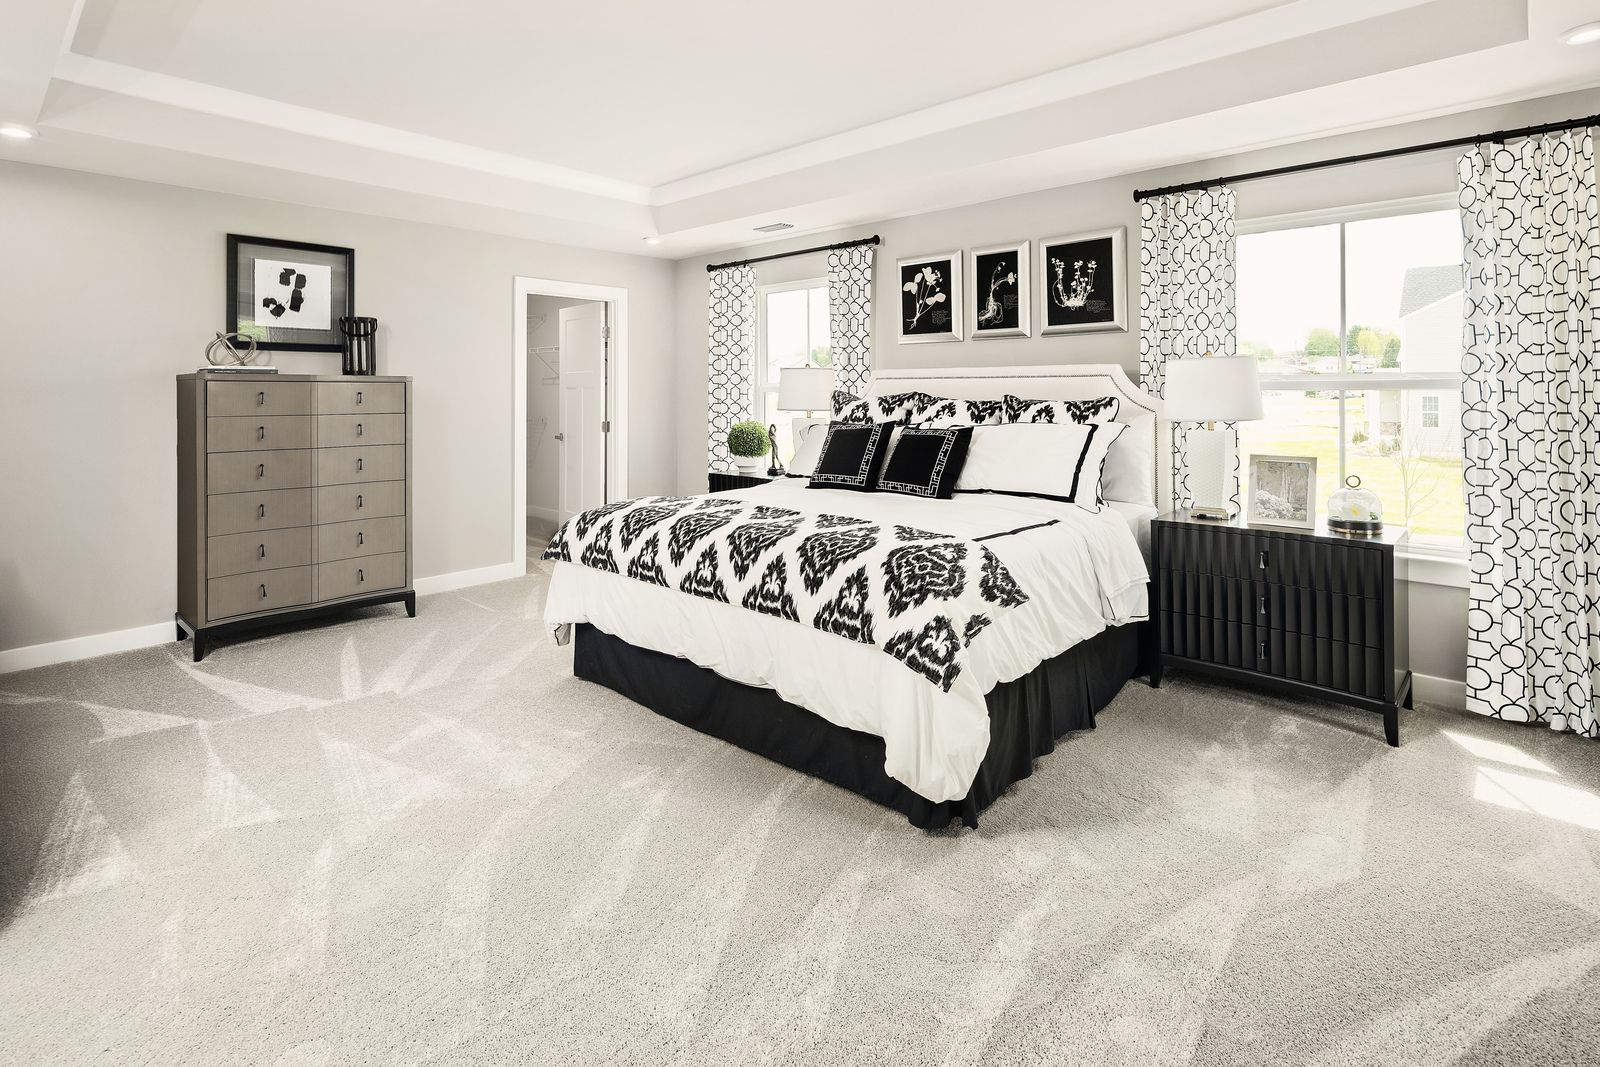 Bedroom featured in the Corsica By Ryan Homes in Allentown-Bethlehem, PA